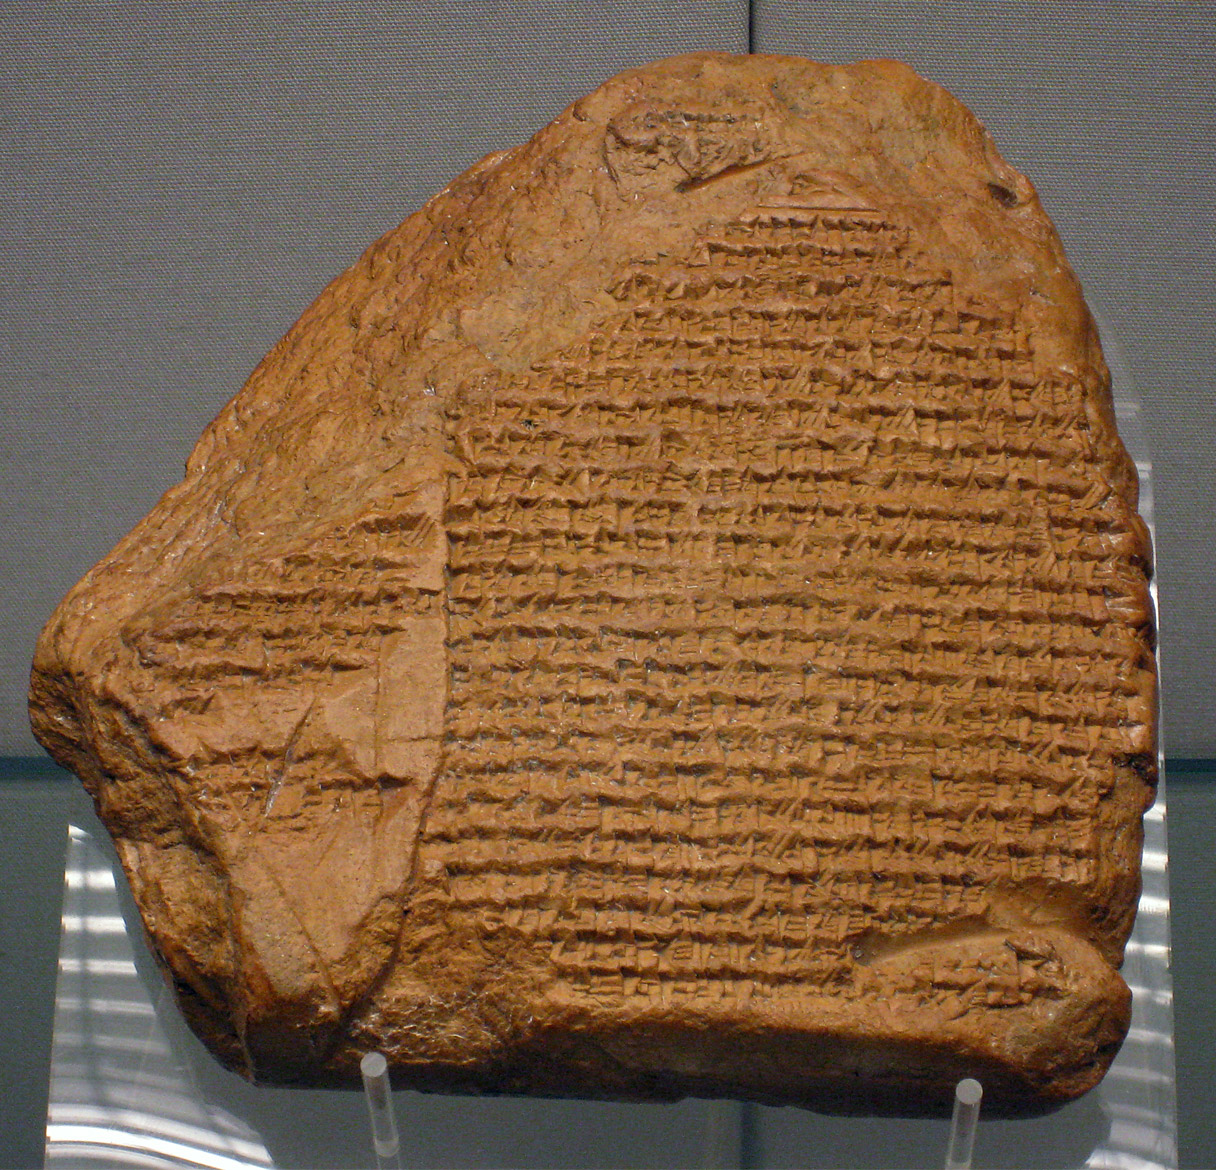 Clay tablet containing a fragment of the Nabonidus Chronicle